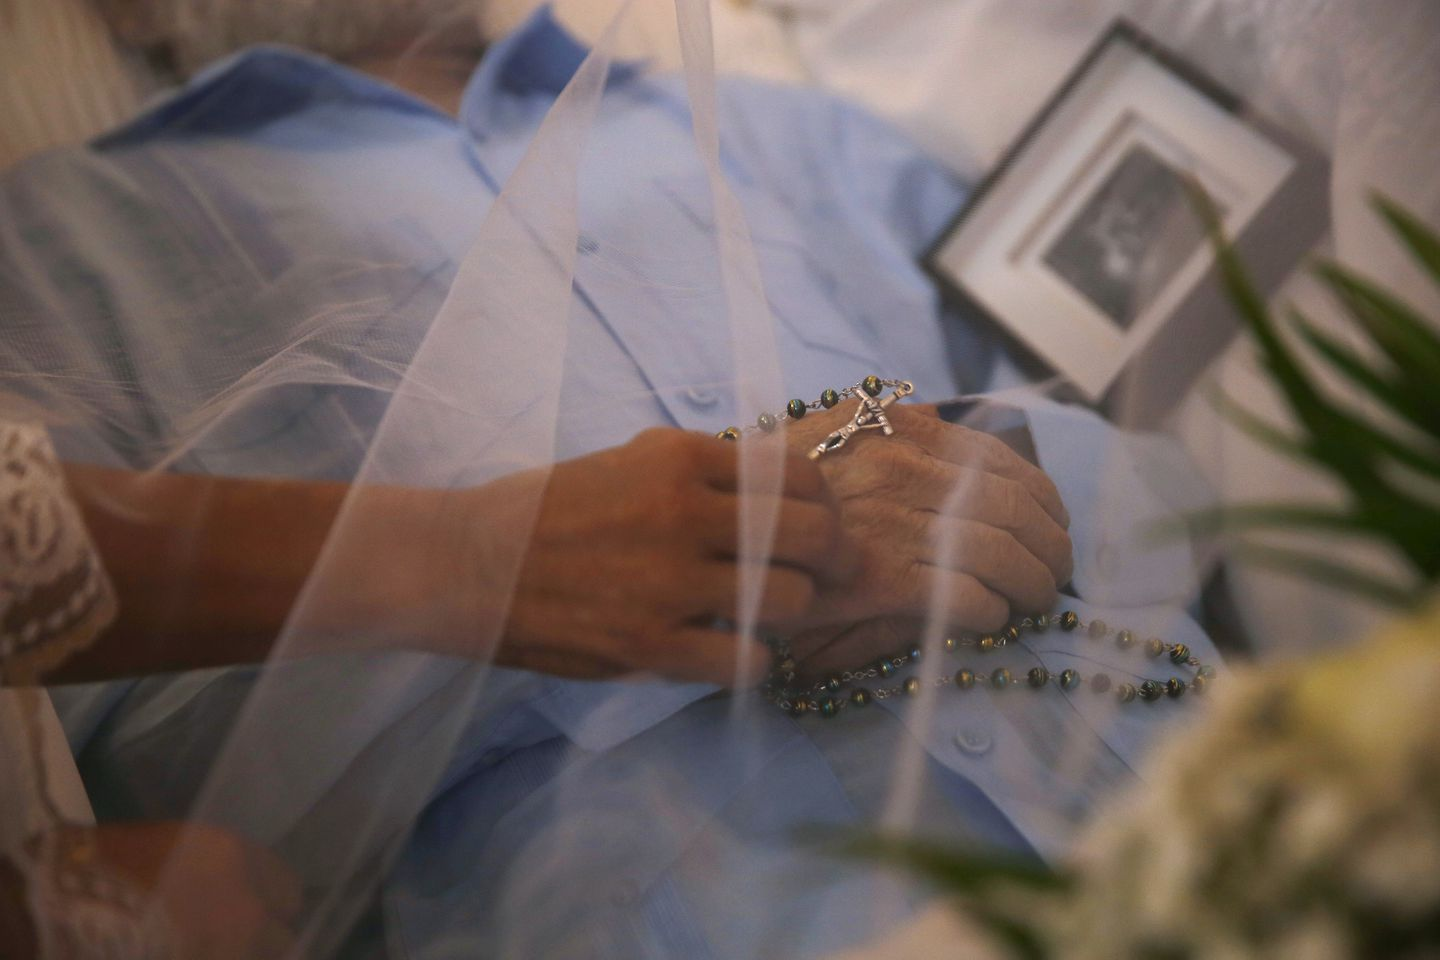 Ana Ruiz reached out to adjust the rosary beads on her husband's hand during his wake.